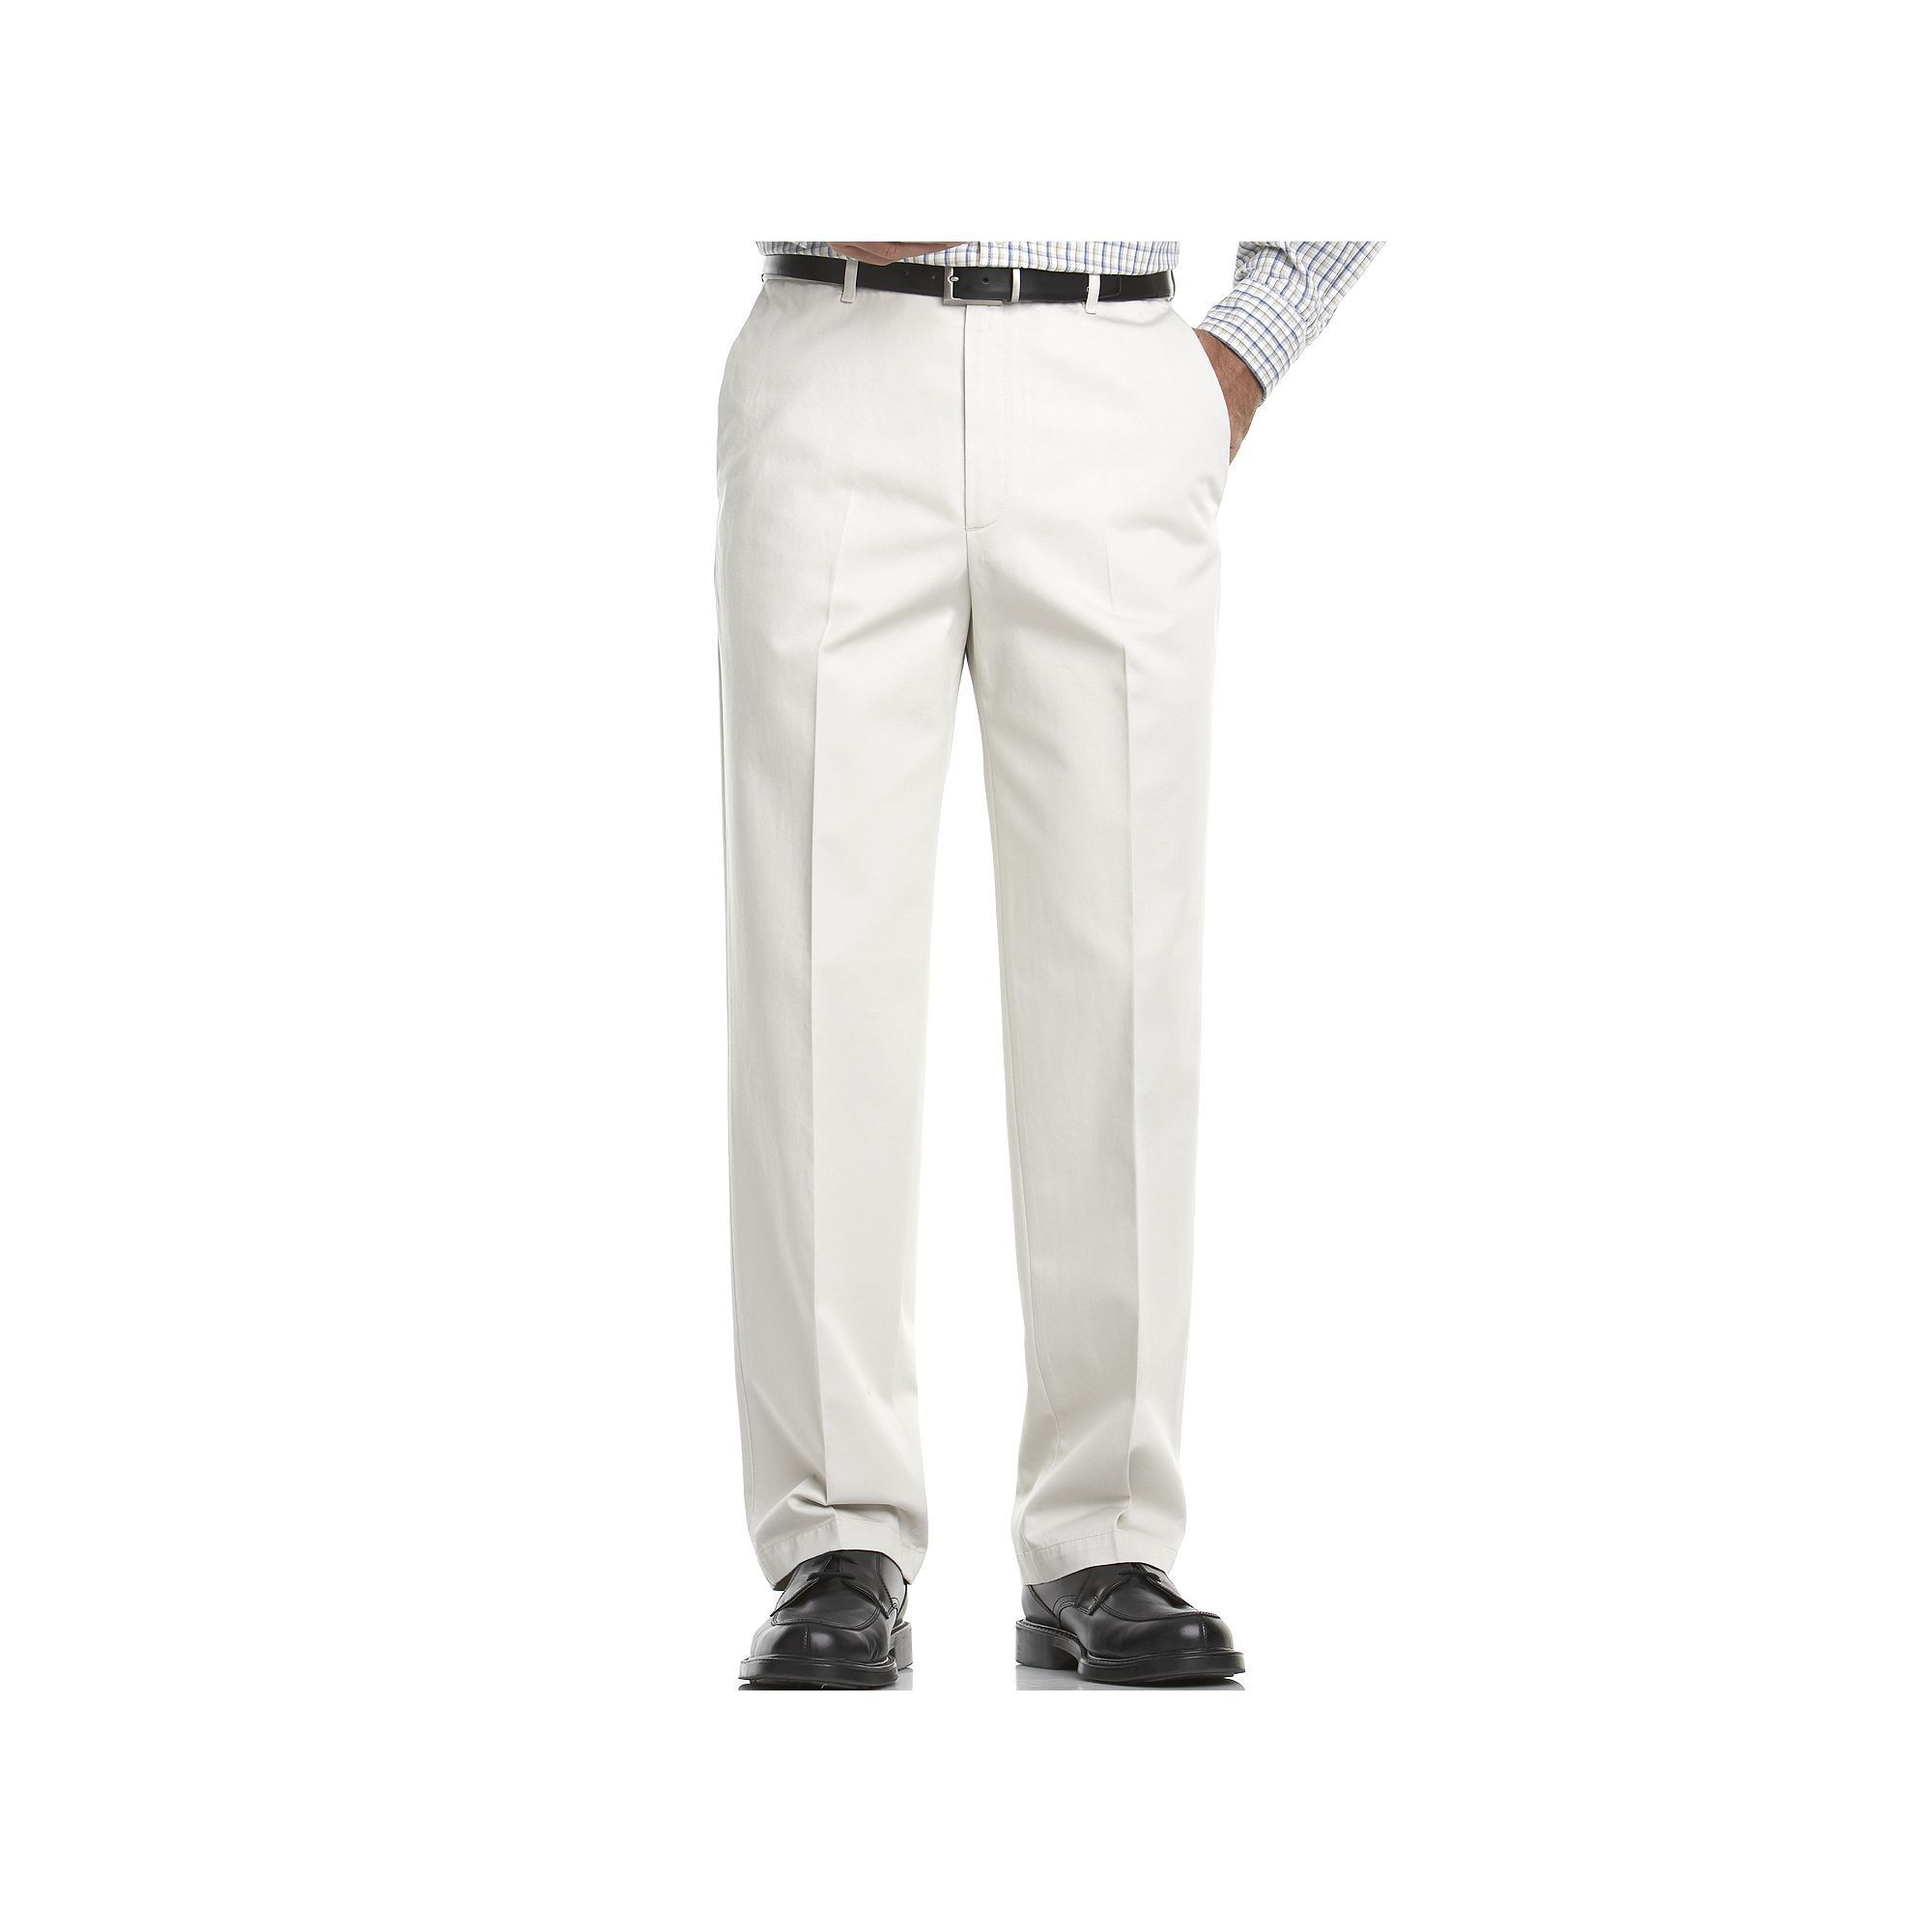 Oversizebig Tall Haggar Work To Weekend Classic Fit Flat Front Expandable Waist Pants Men S Size 50x30 Lt Beige In 2019 Products Pants Tall Pants T